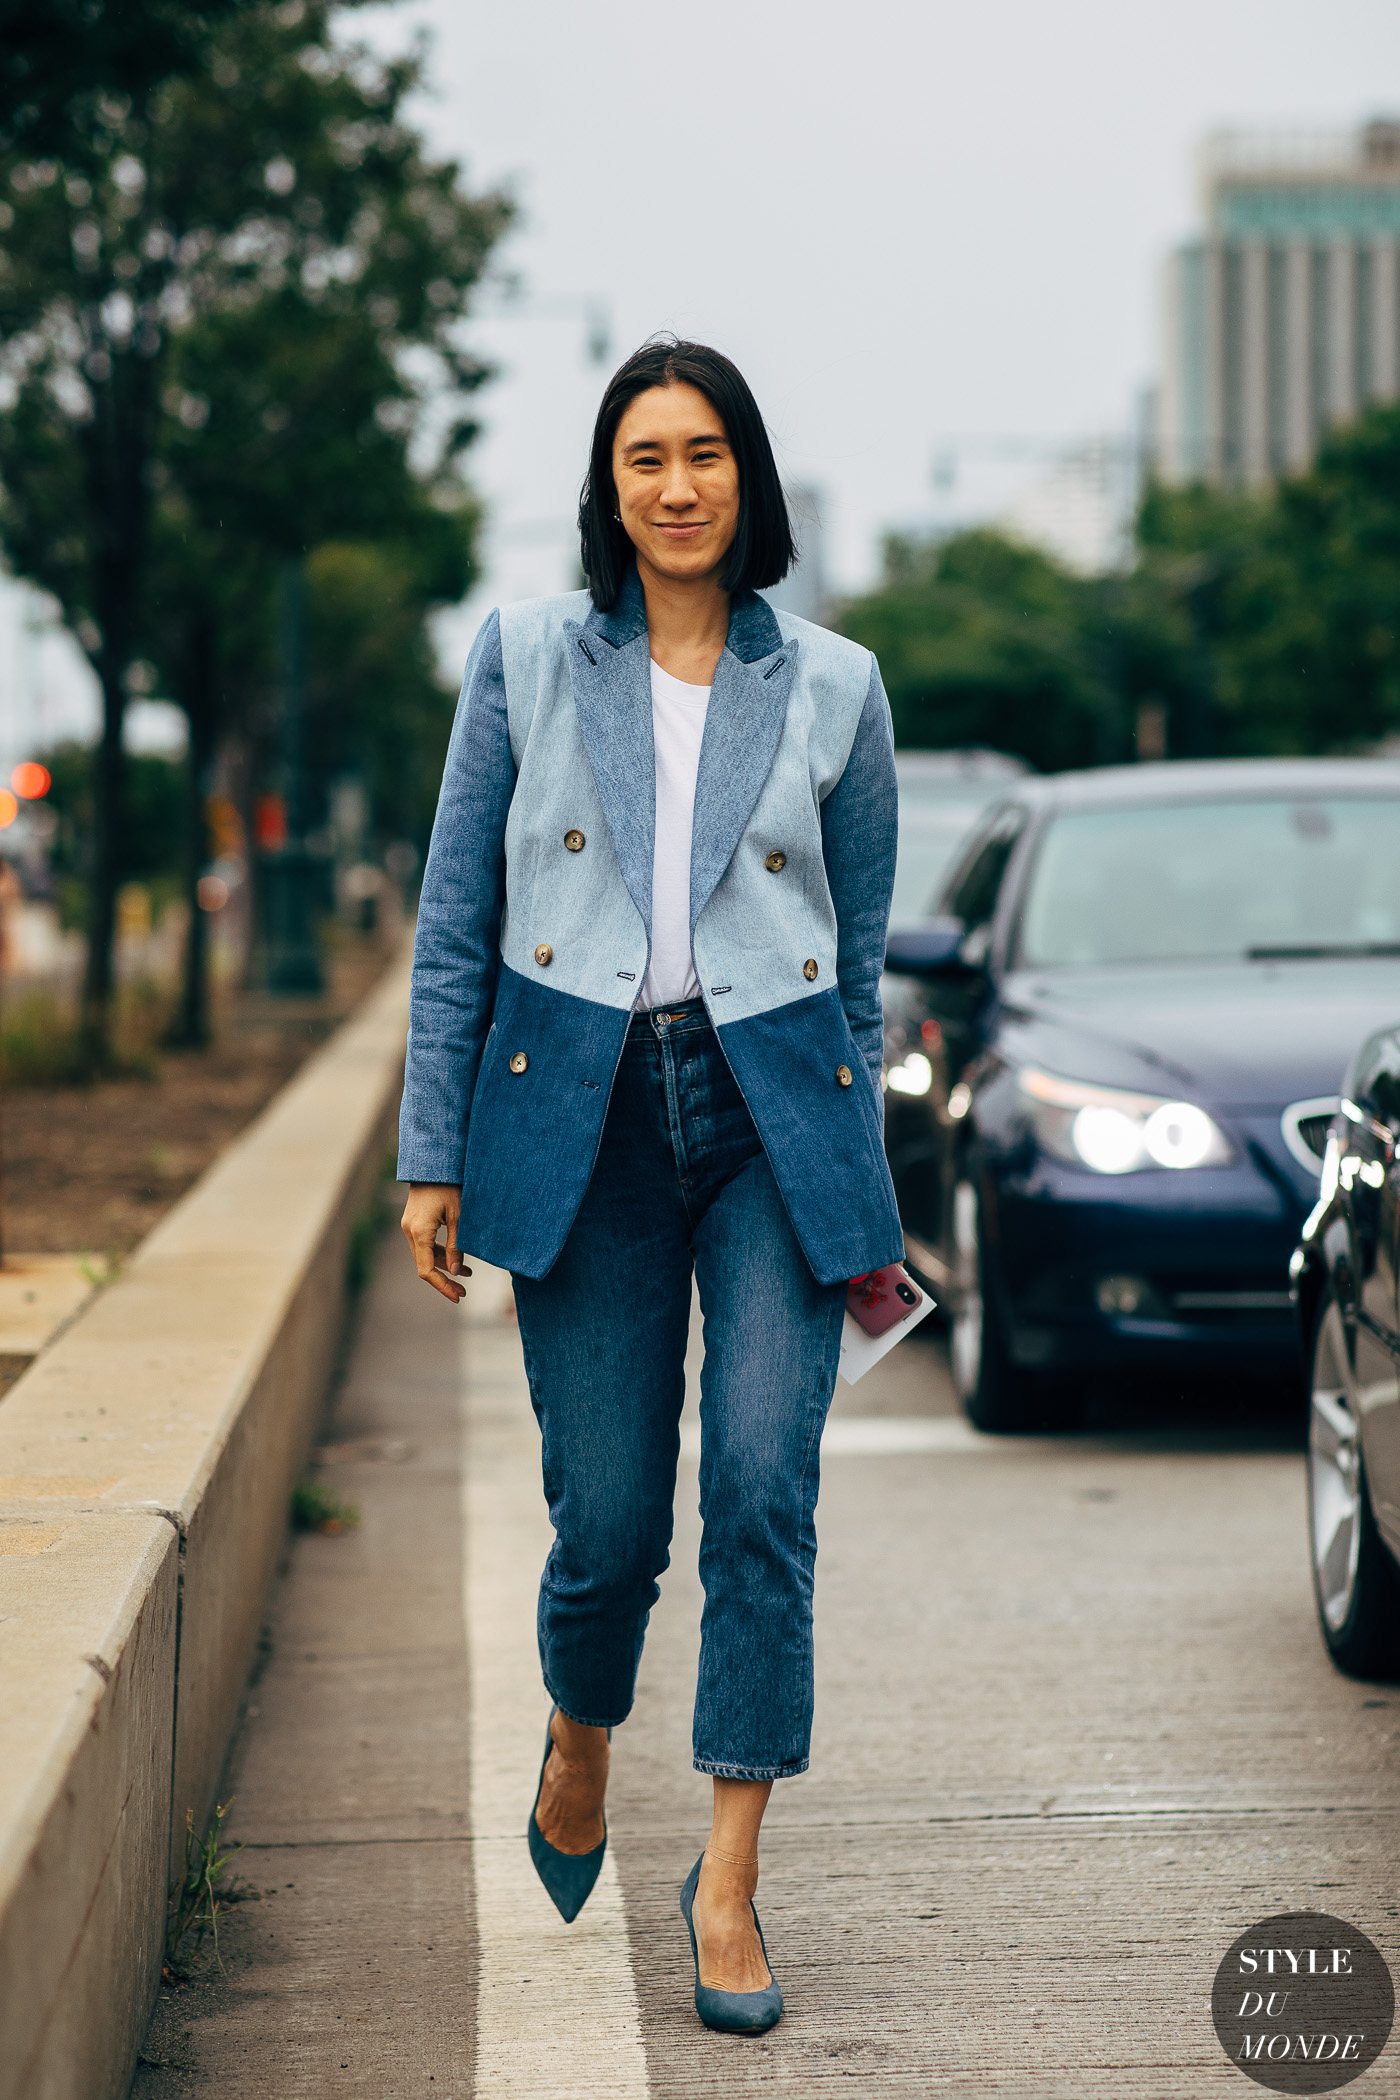 Eva Chen by STYLEDUMONDE Street Style Fashion Photography20180908_48A7890